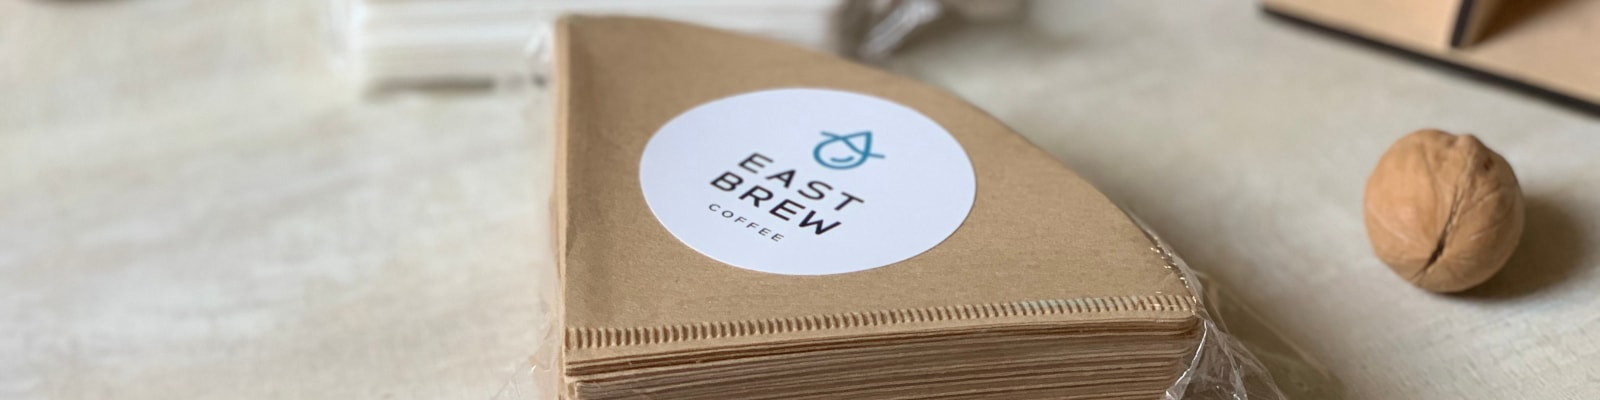 Eastbrew Paper Filters